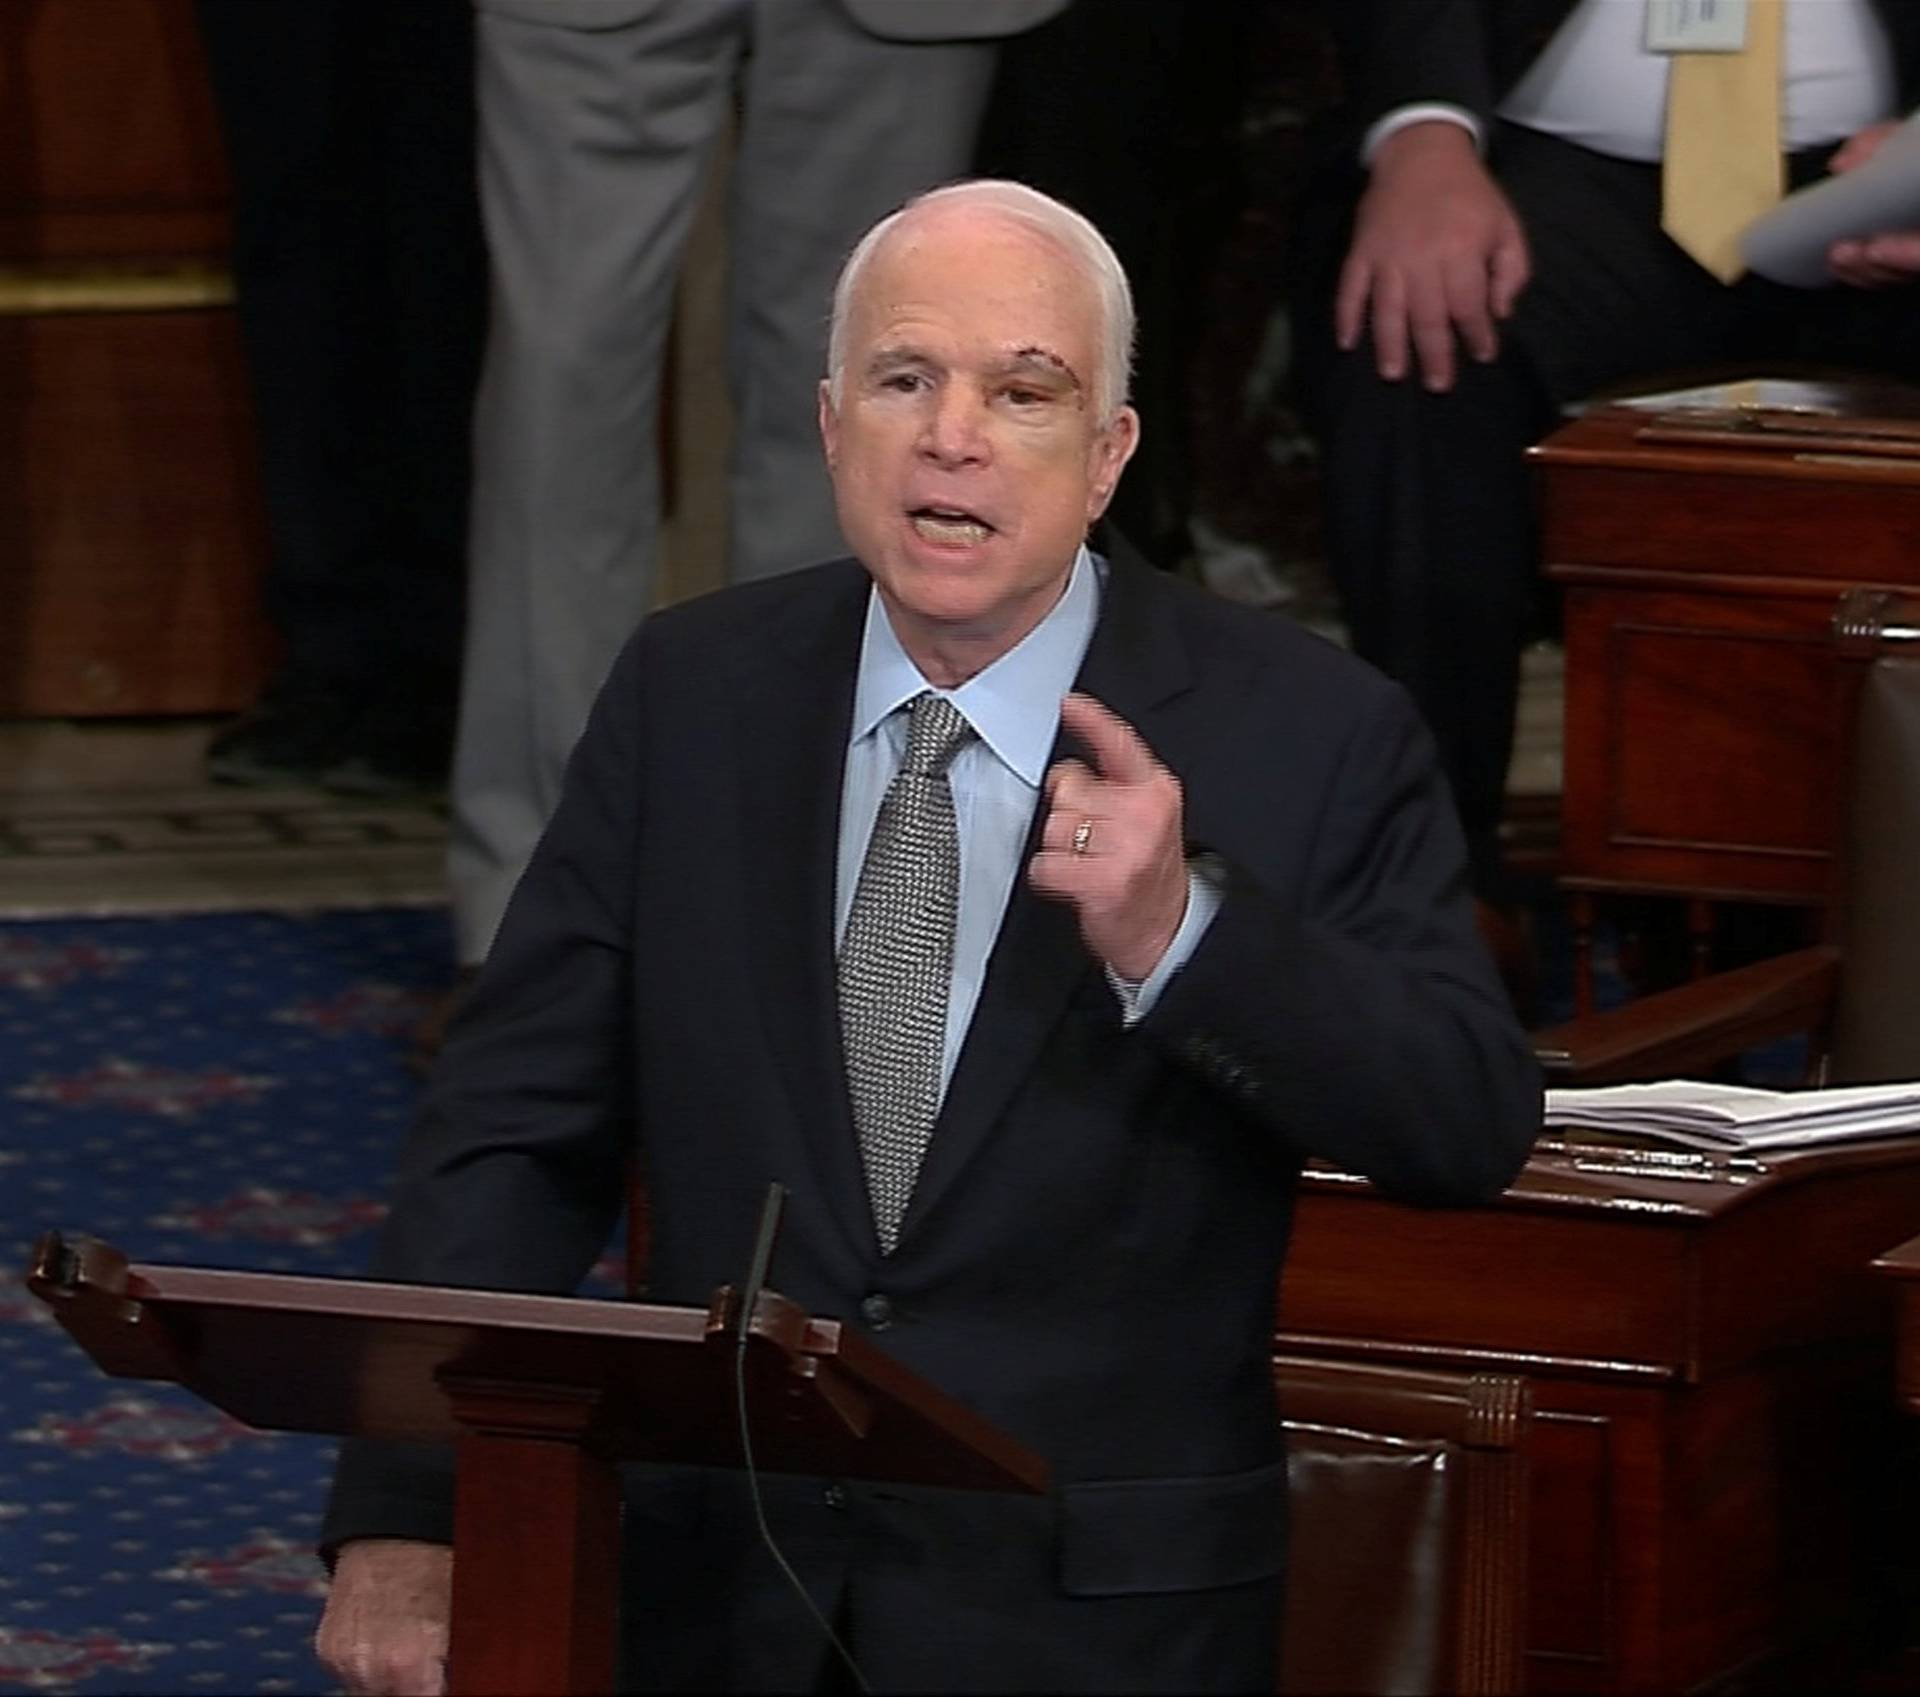 Still image from video shows U.S. Senator McCain speaking on the floor of the U.S. Senate after a vote on healthcare reform in Washington